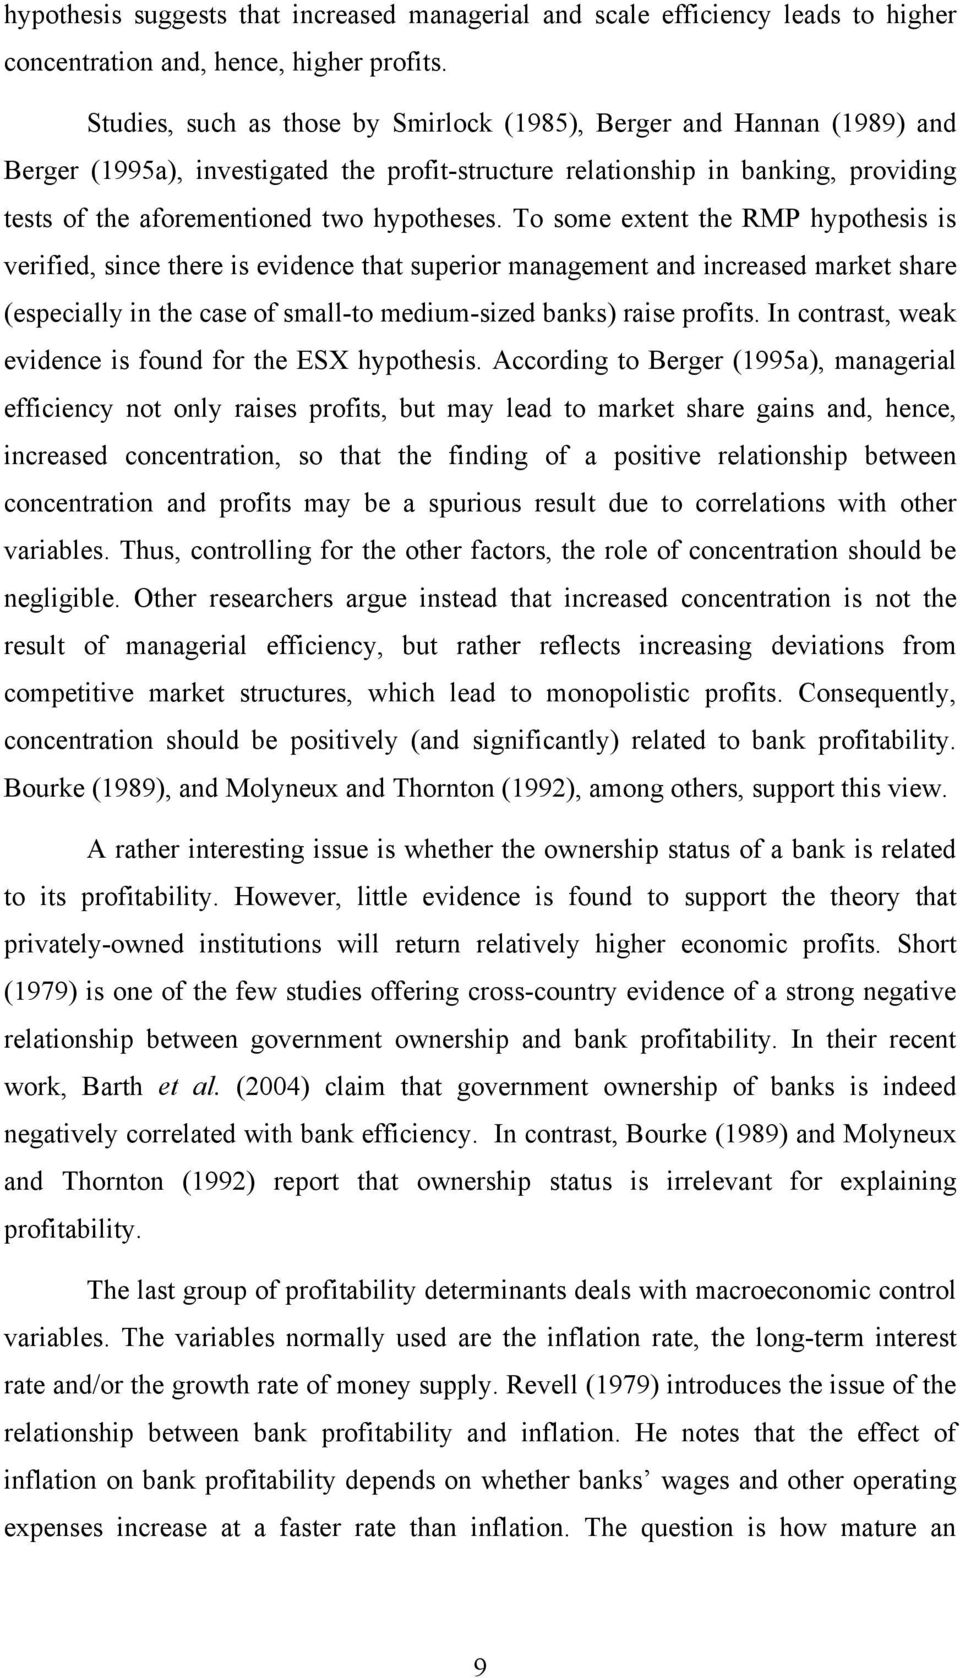 To some extent the RM hypothesis is verified, since there is evidence that superior management and increased market share (especially in the case of small-to medium-sized banks) raise profits.